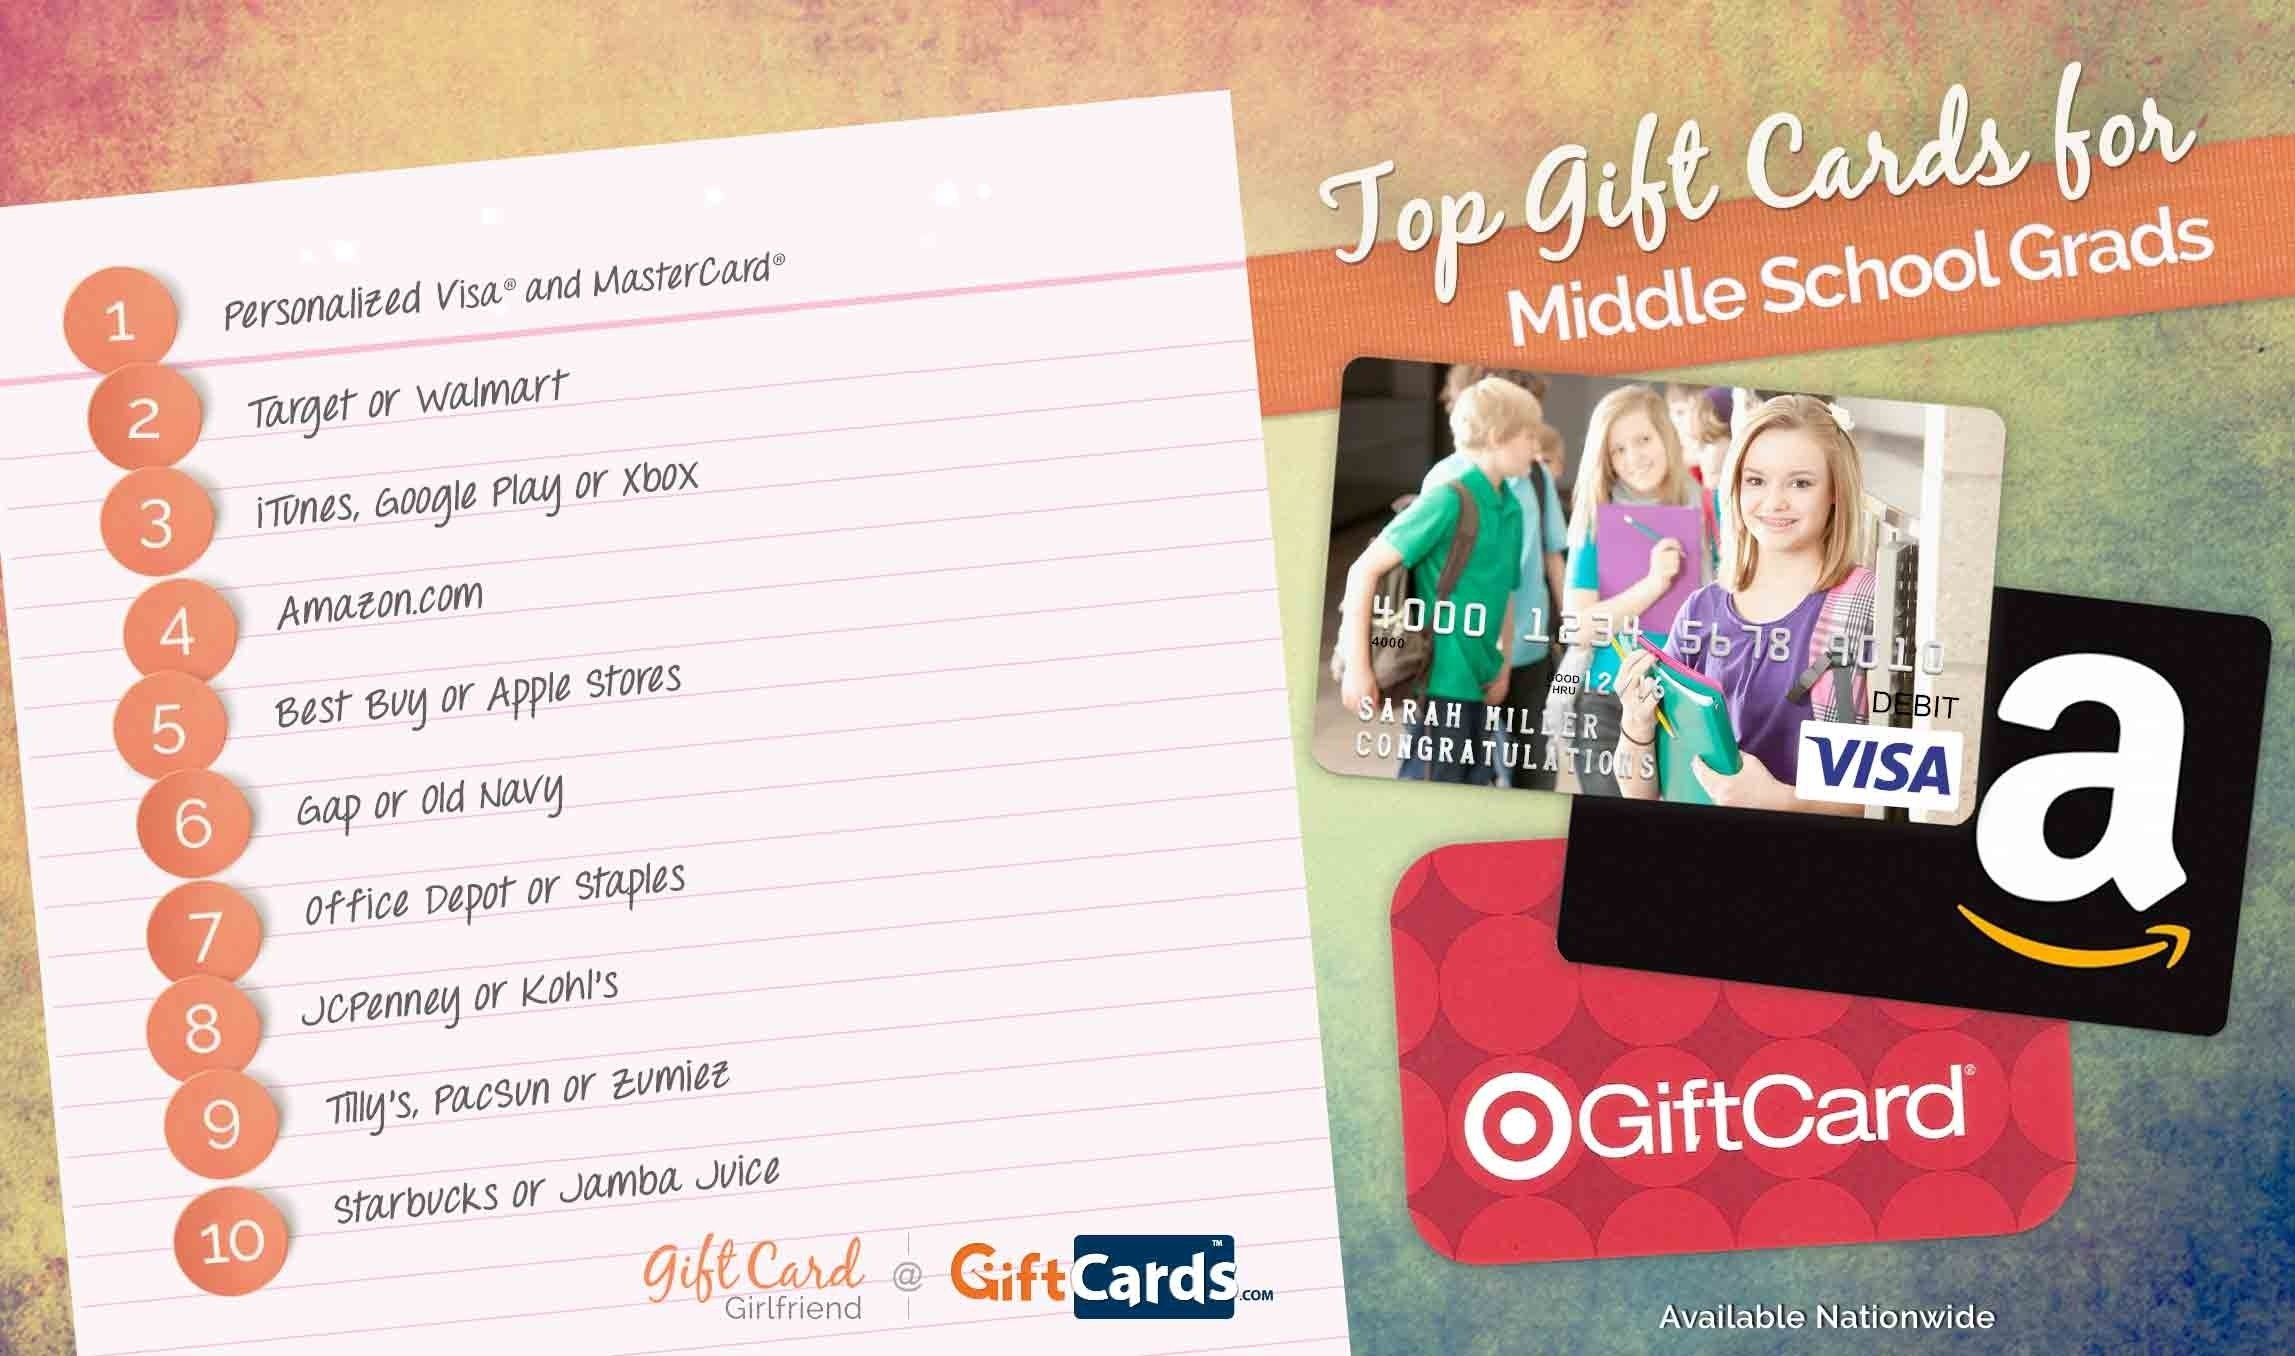 10 Spectacular Middle School Graduation Gift Ideas top 10 gift cards for middle school graduates gcg 4 2020